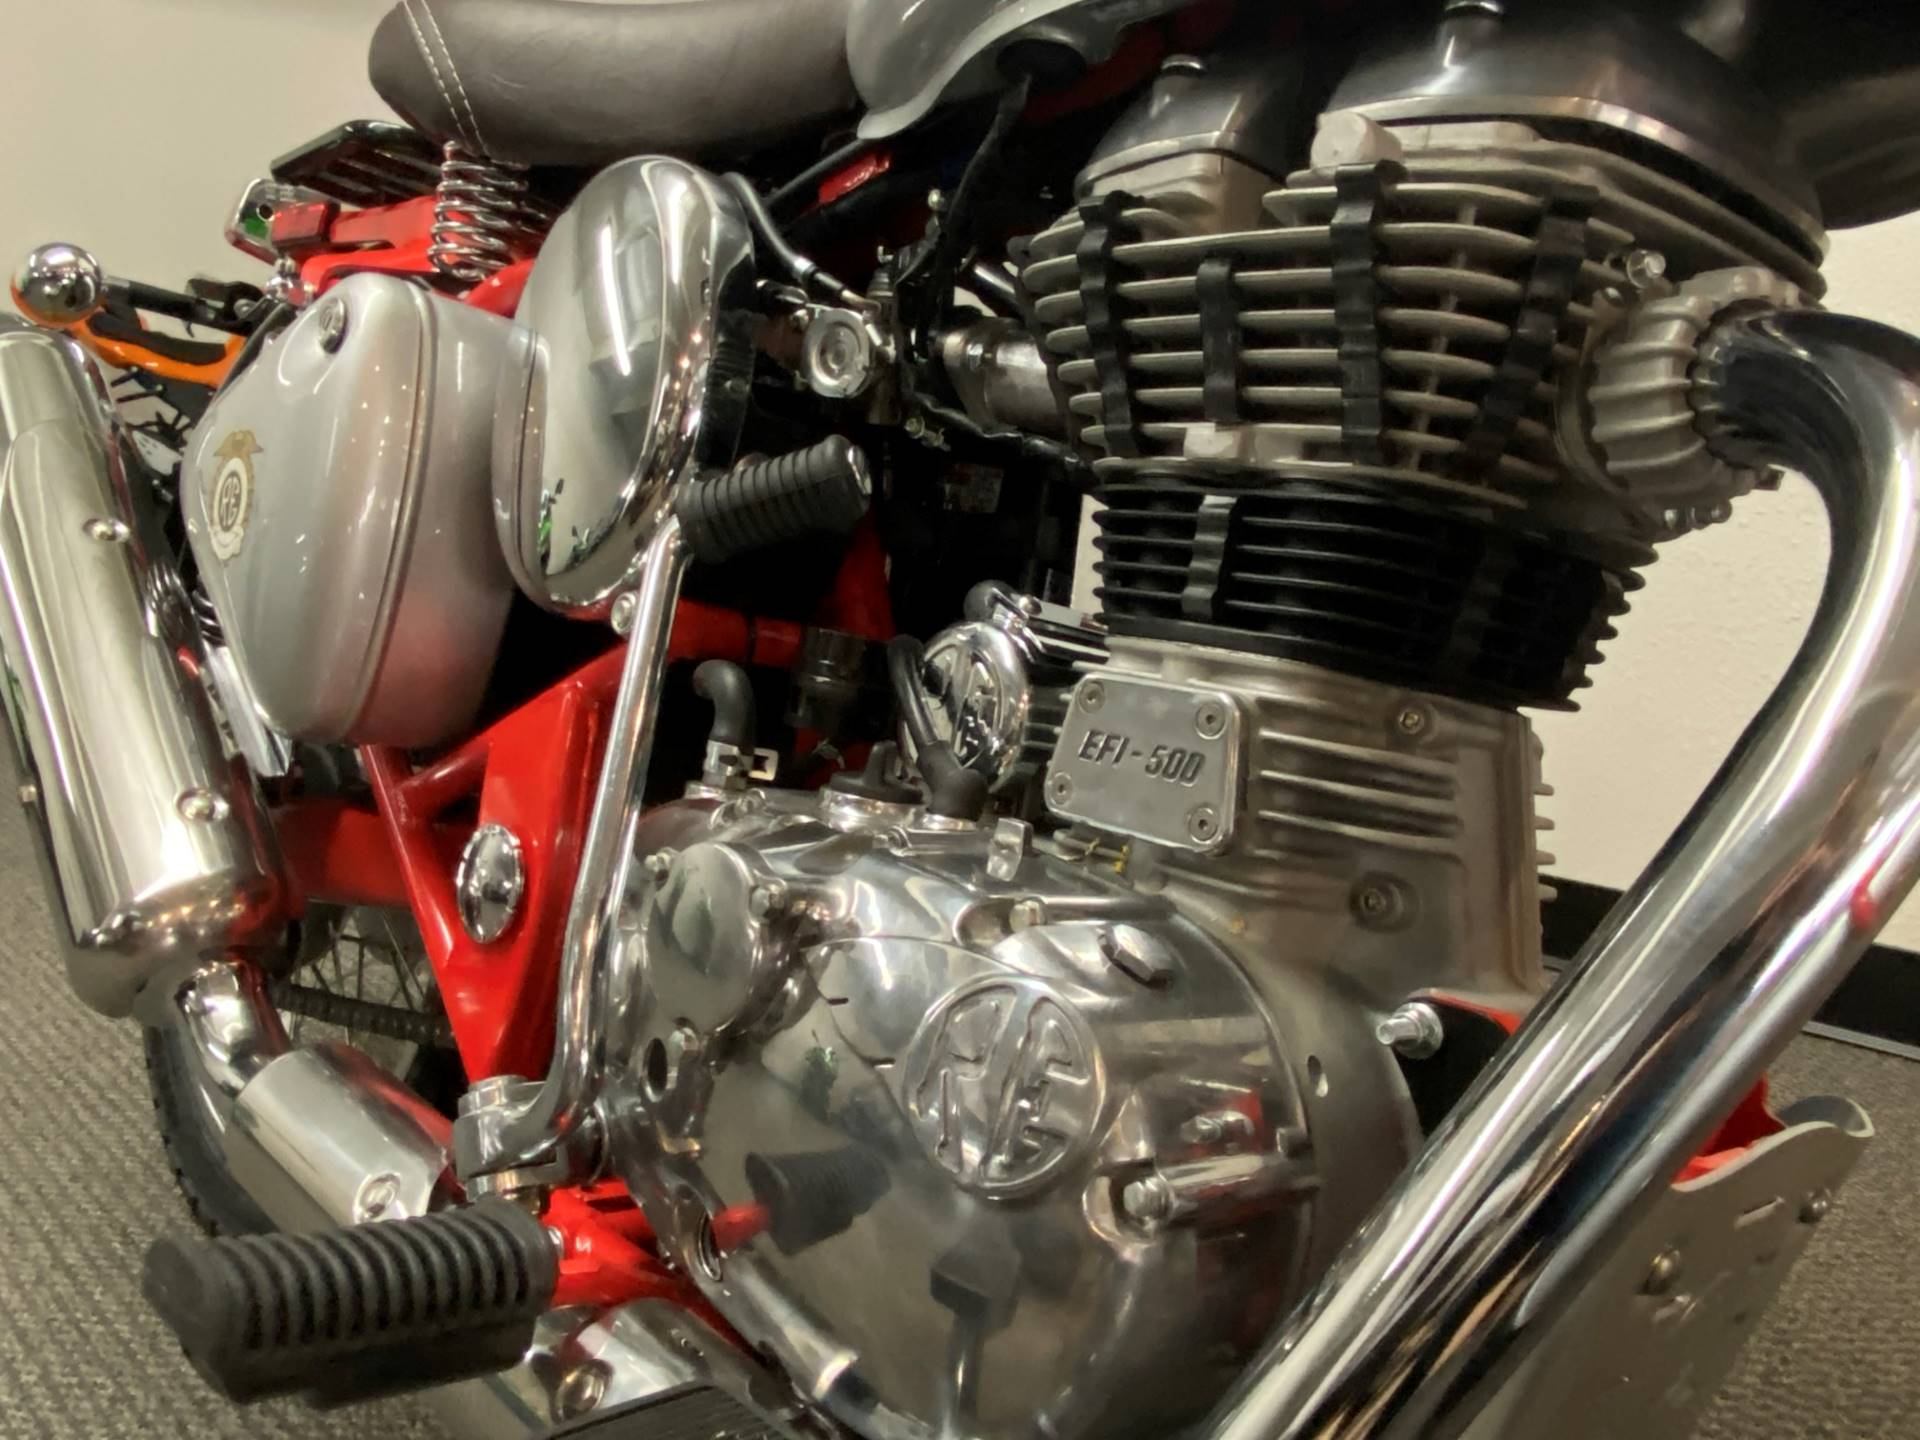 2020 Royal Enfield Bullet Trials Works Replica 500 Limited Edition in Iowa City, Iowa - Photo 3